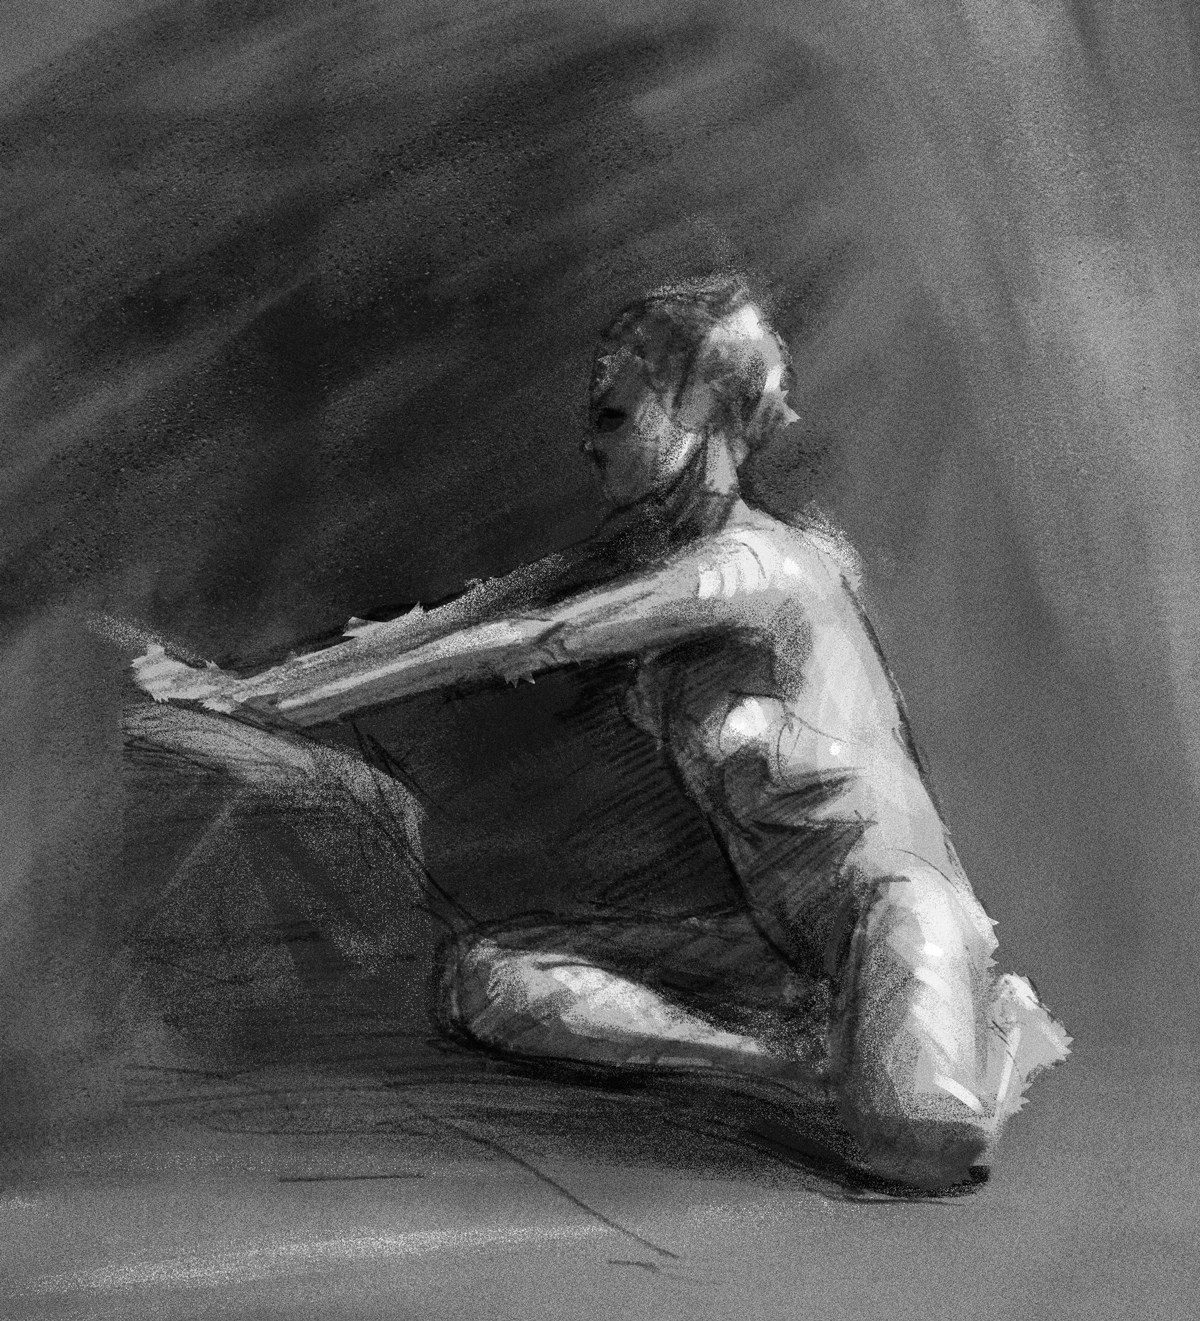 Life drawing rendered digitally.